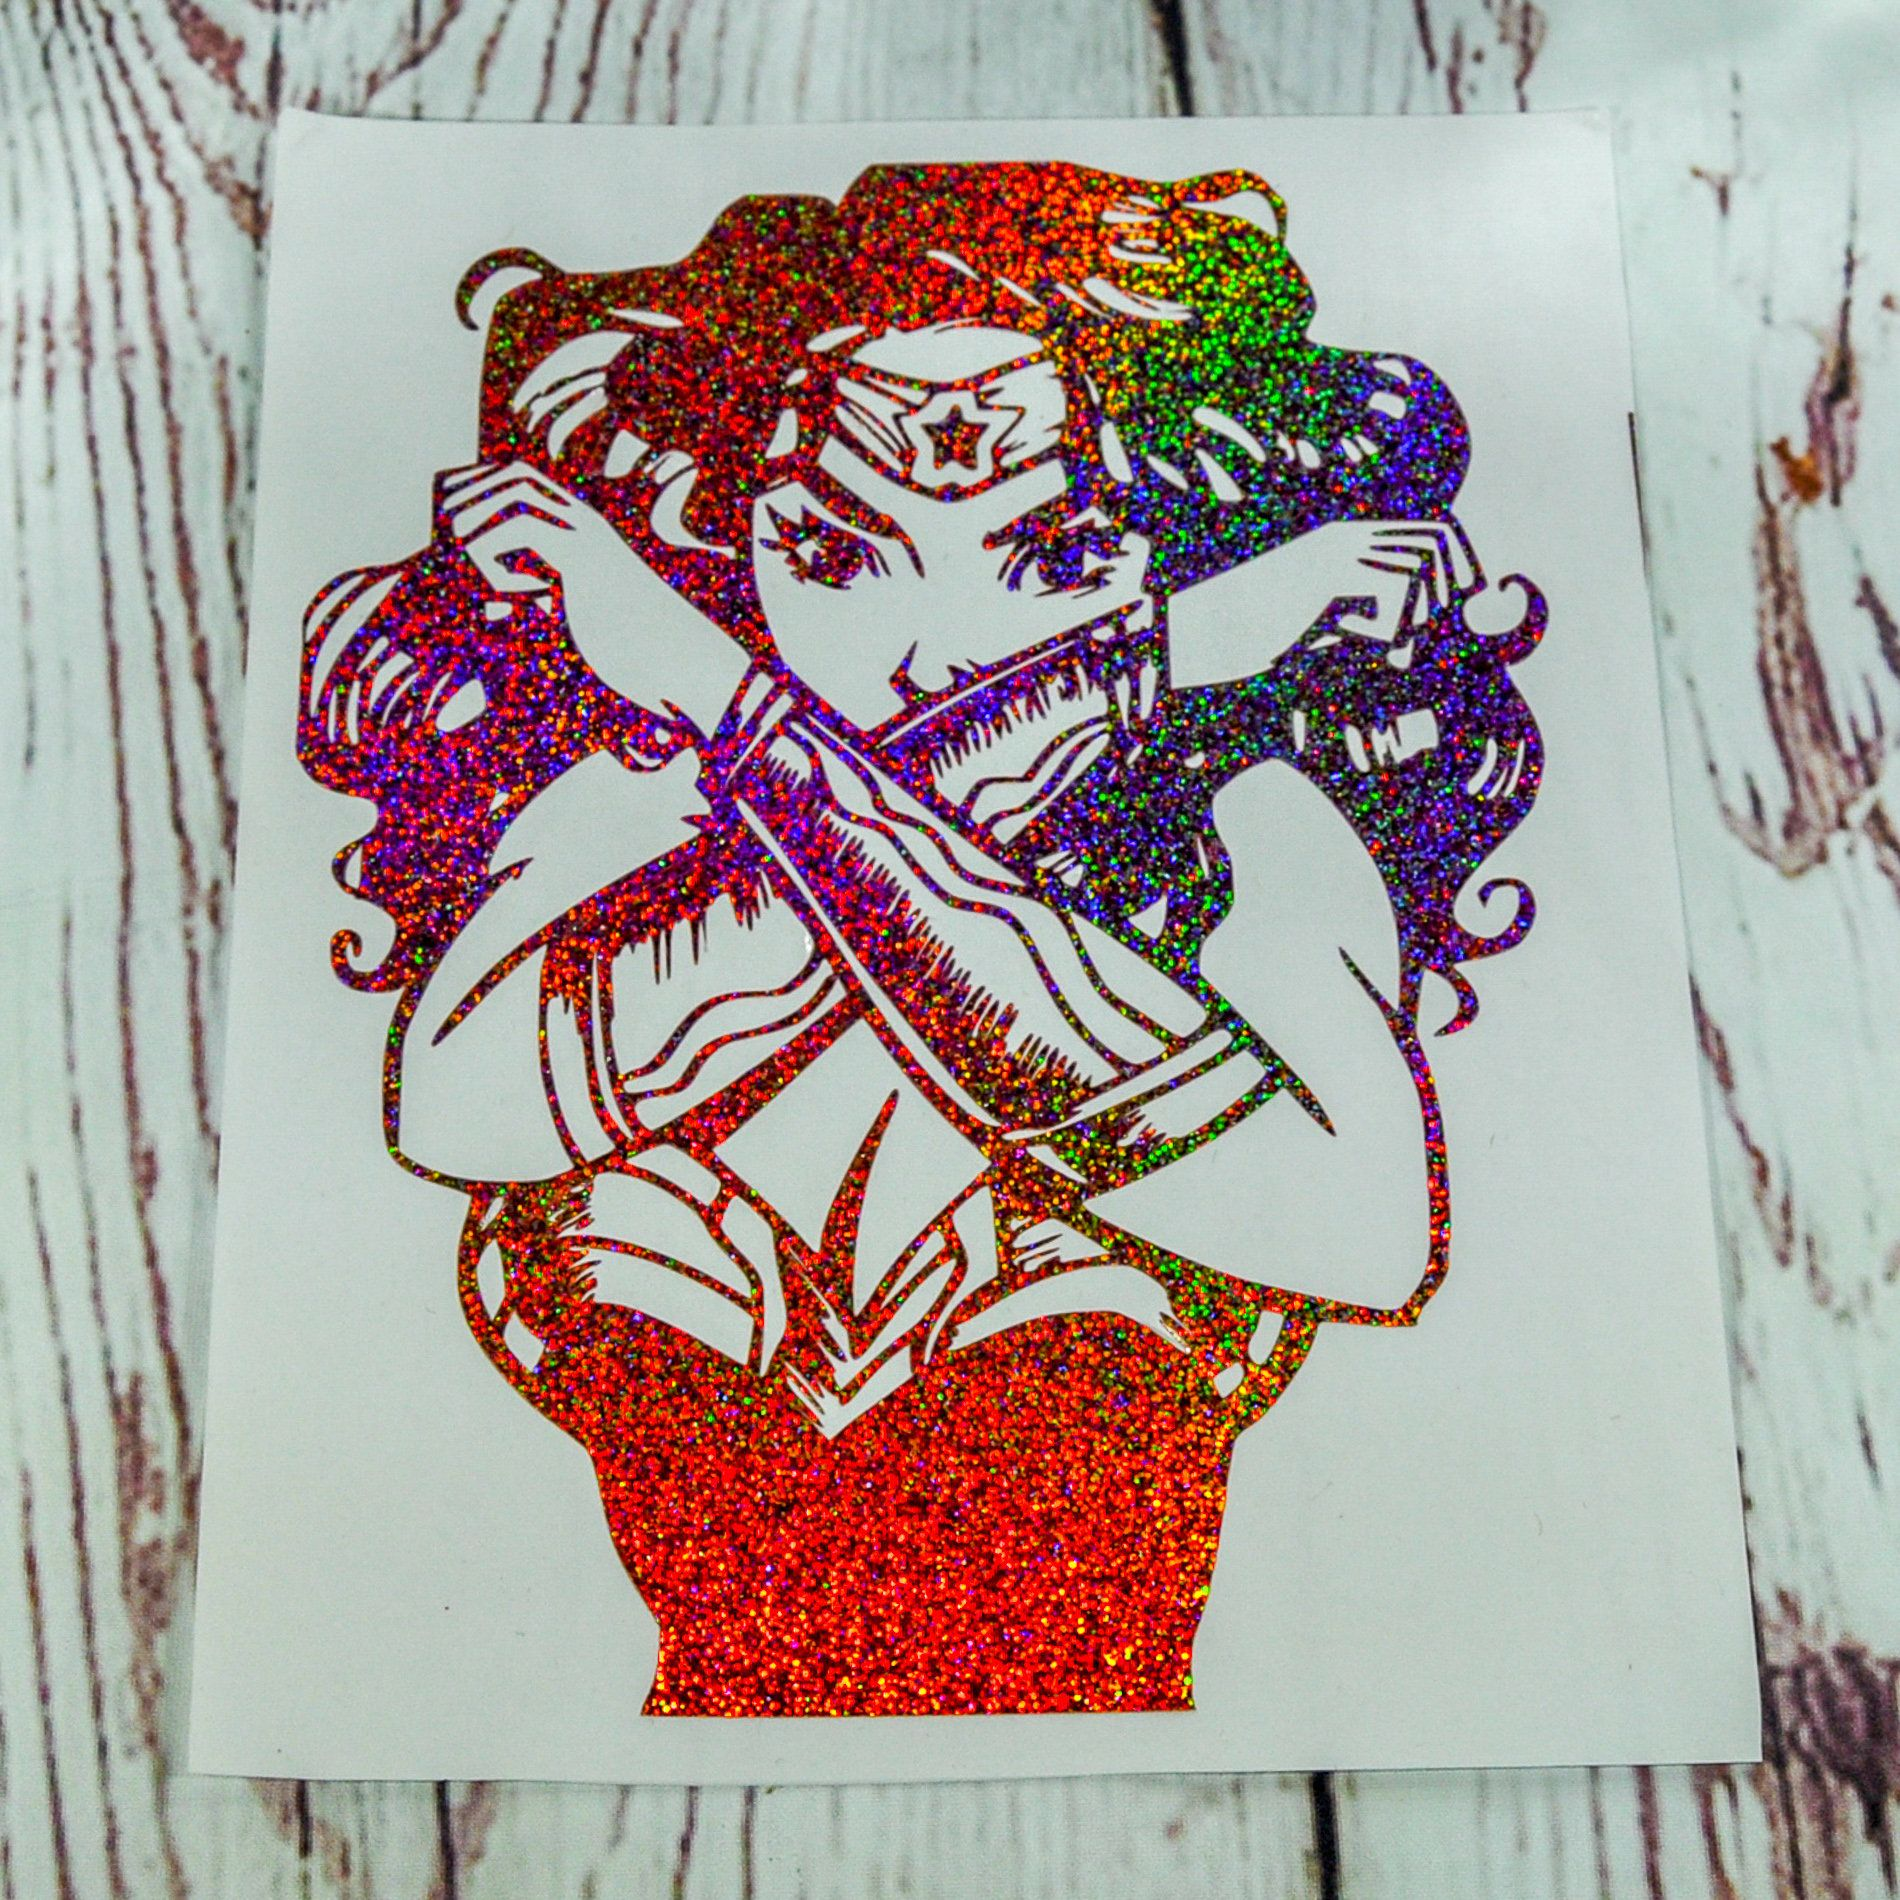 Holographic Decal Wonder Woman Holographic Decal Wonder Woman Holographic Car Decal Holographic Car Decal Holographic Car Car Decals Vinyl Car Decals [ 1900 x 1900 Pixel ]